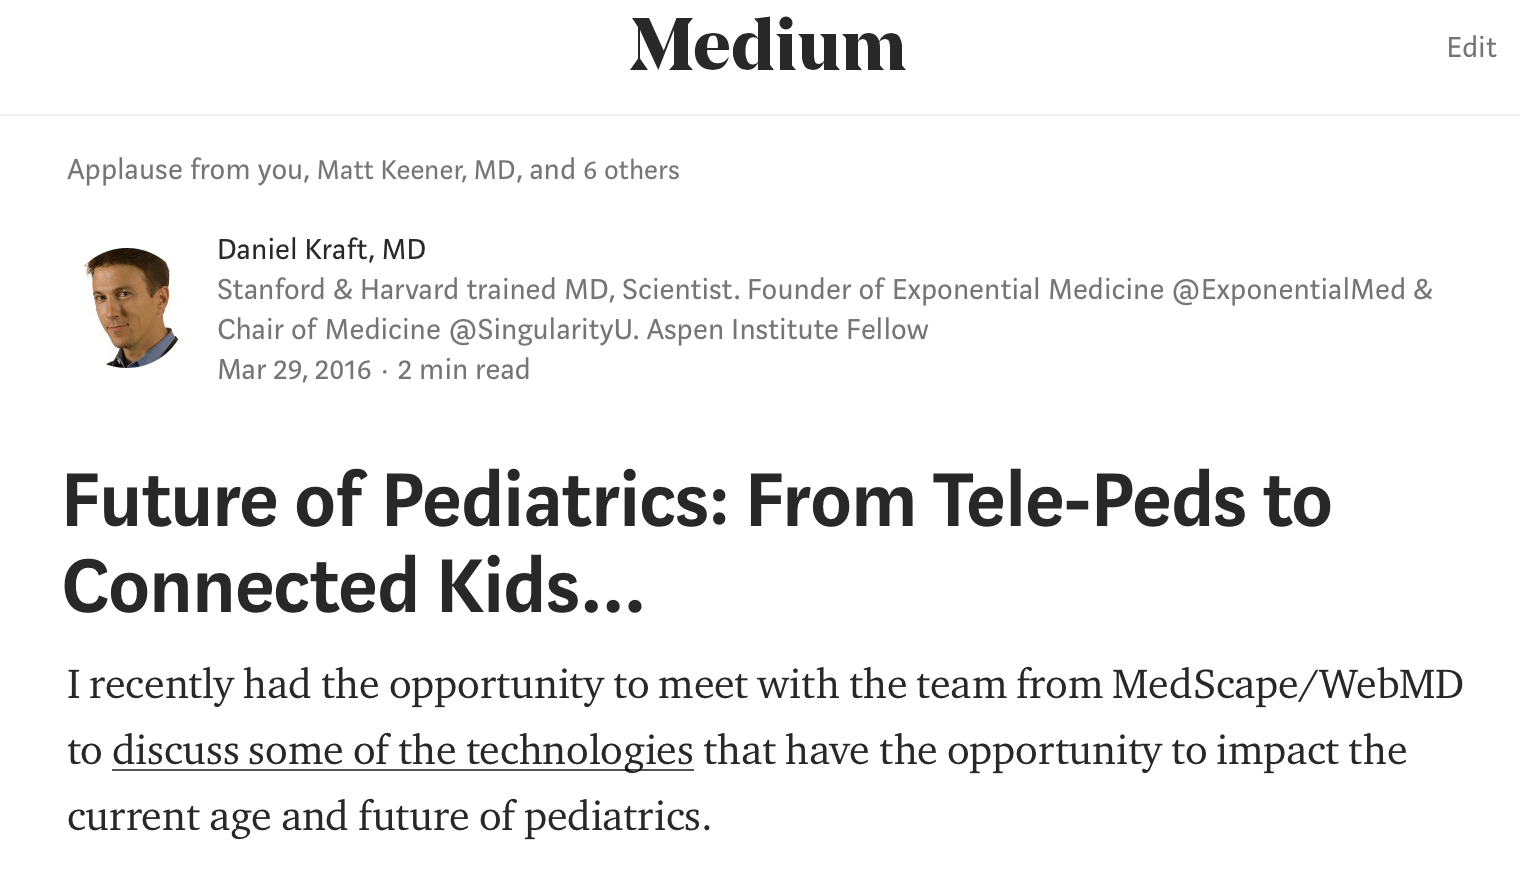 Future of Pediatrics